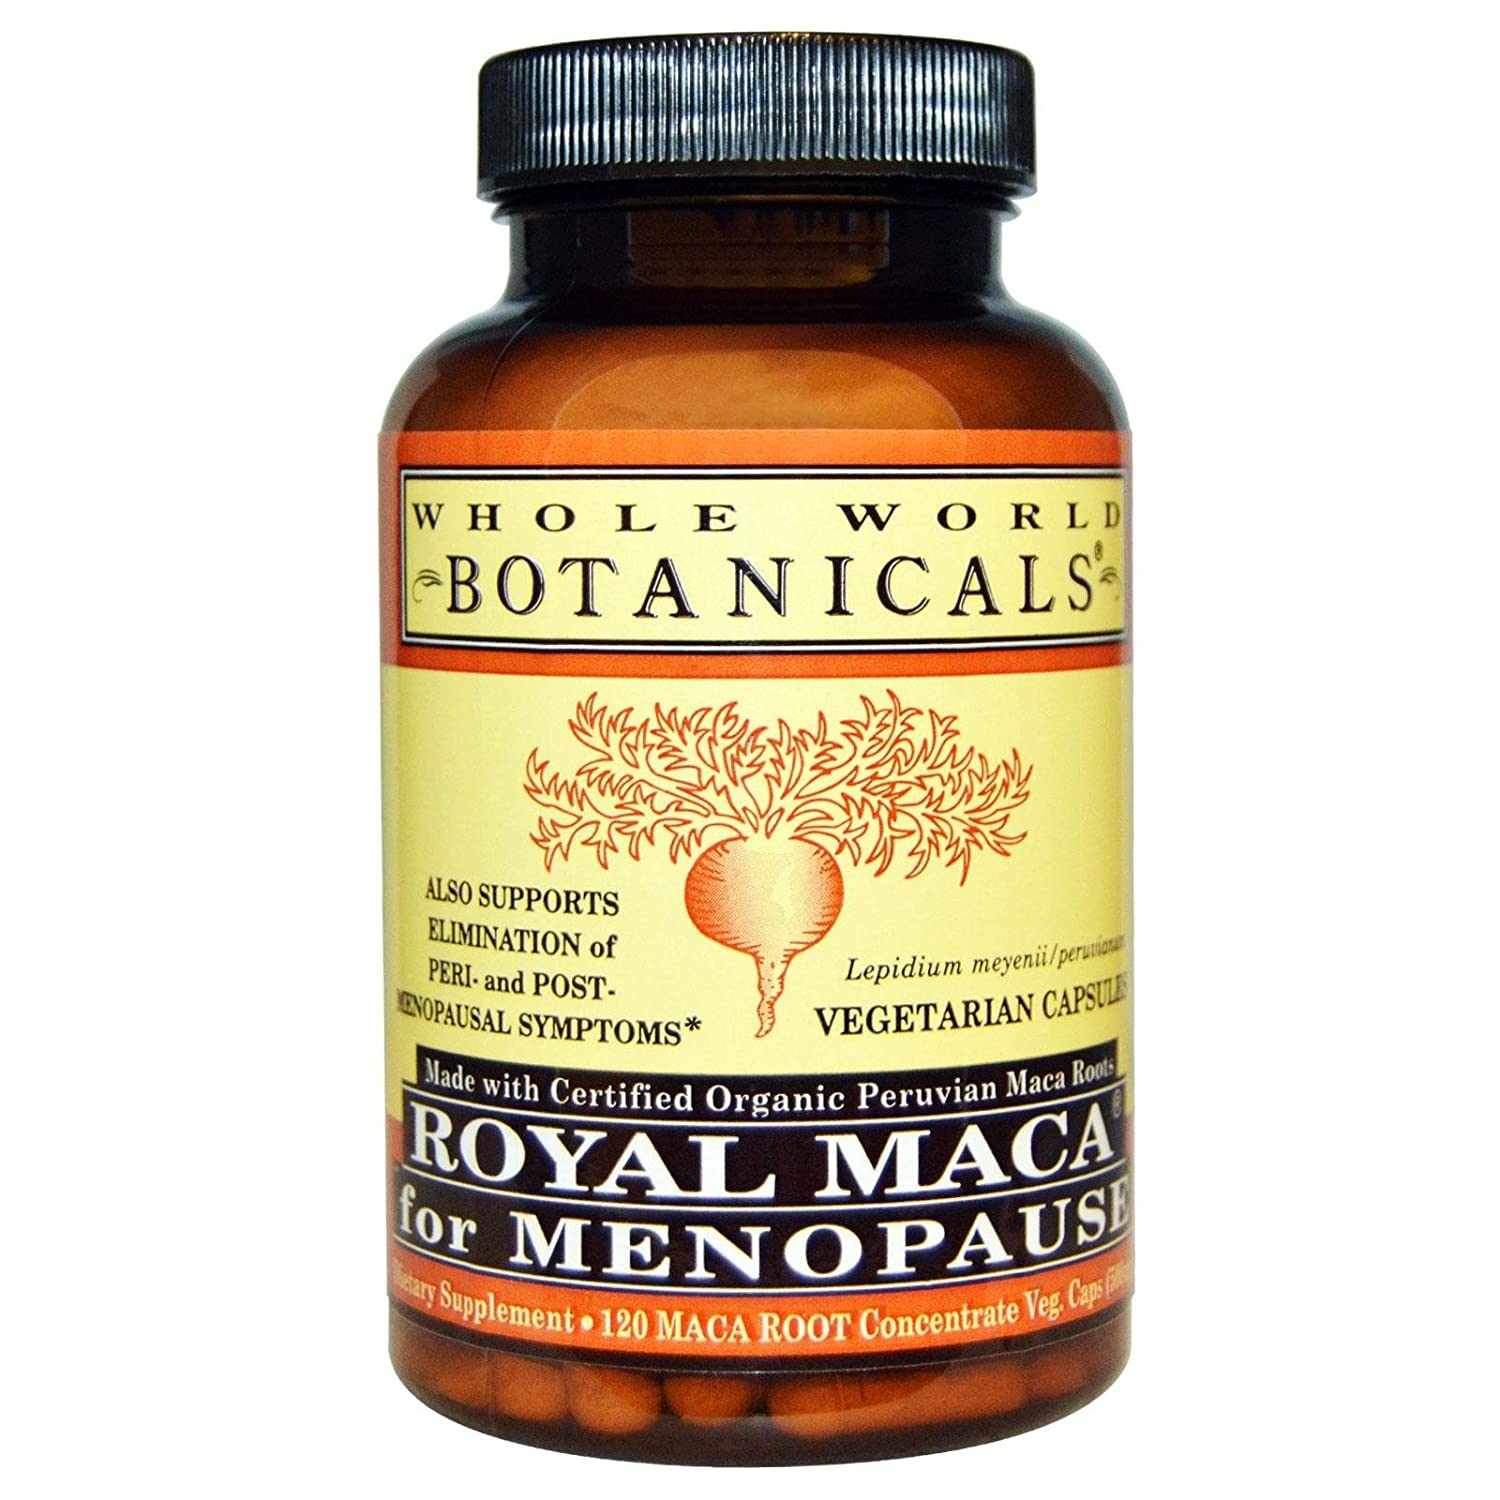 Oraganic Royal Maca Whole World Botanicals 120 VCaps: Amazon.es: Salud y cuidado personal